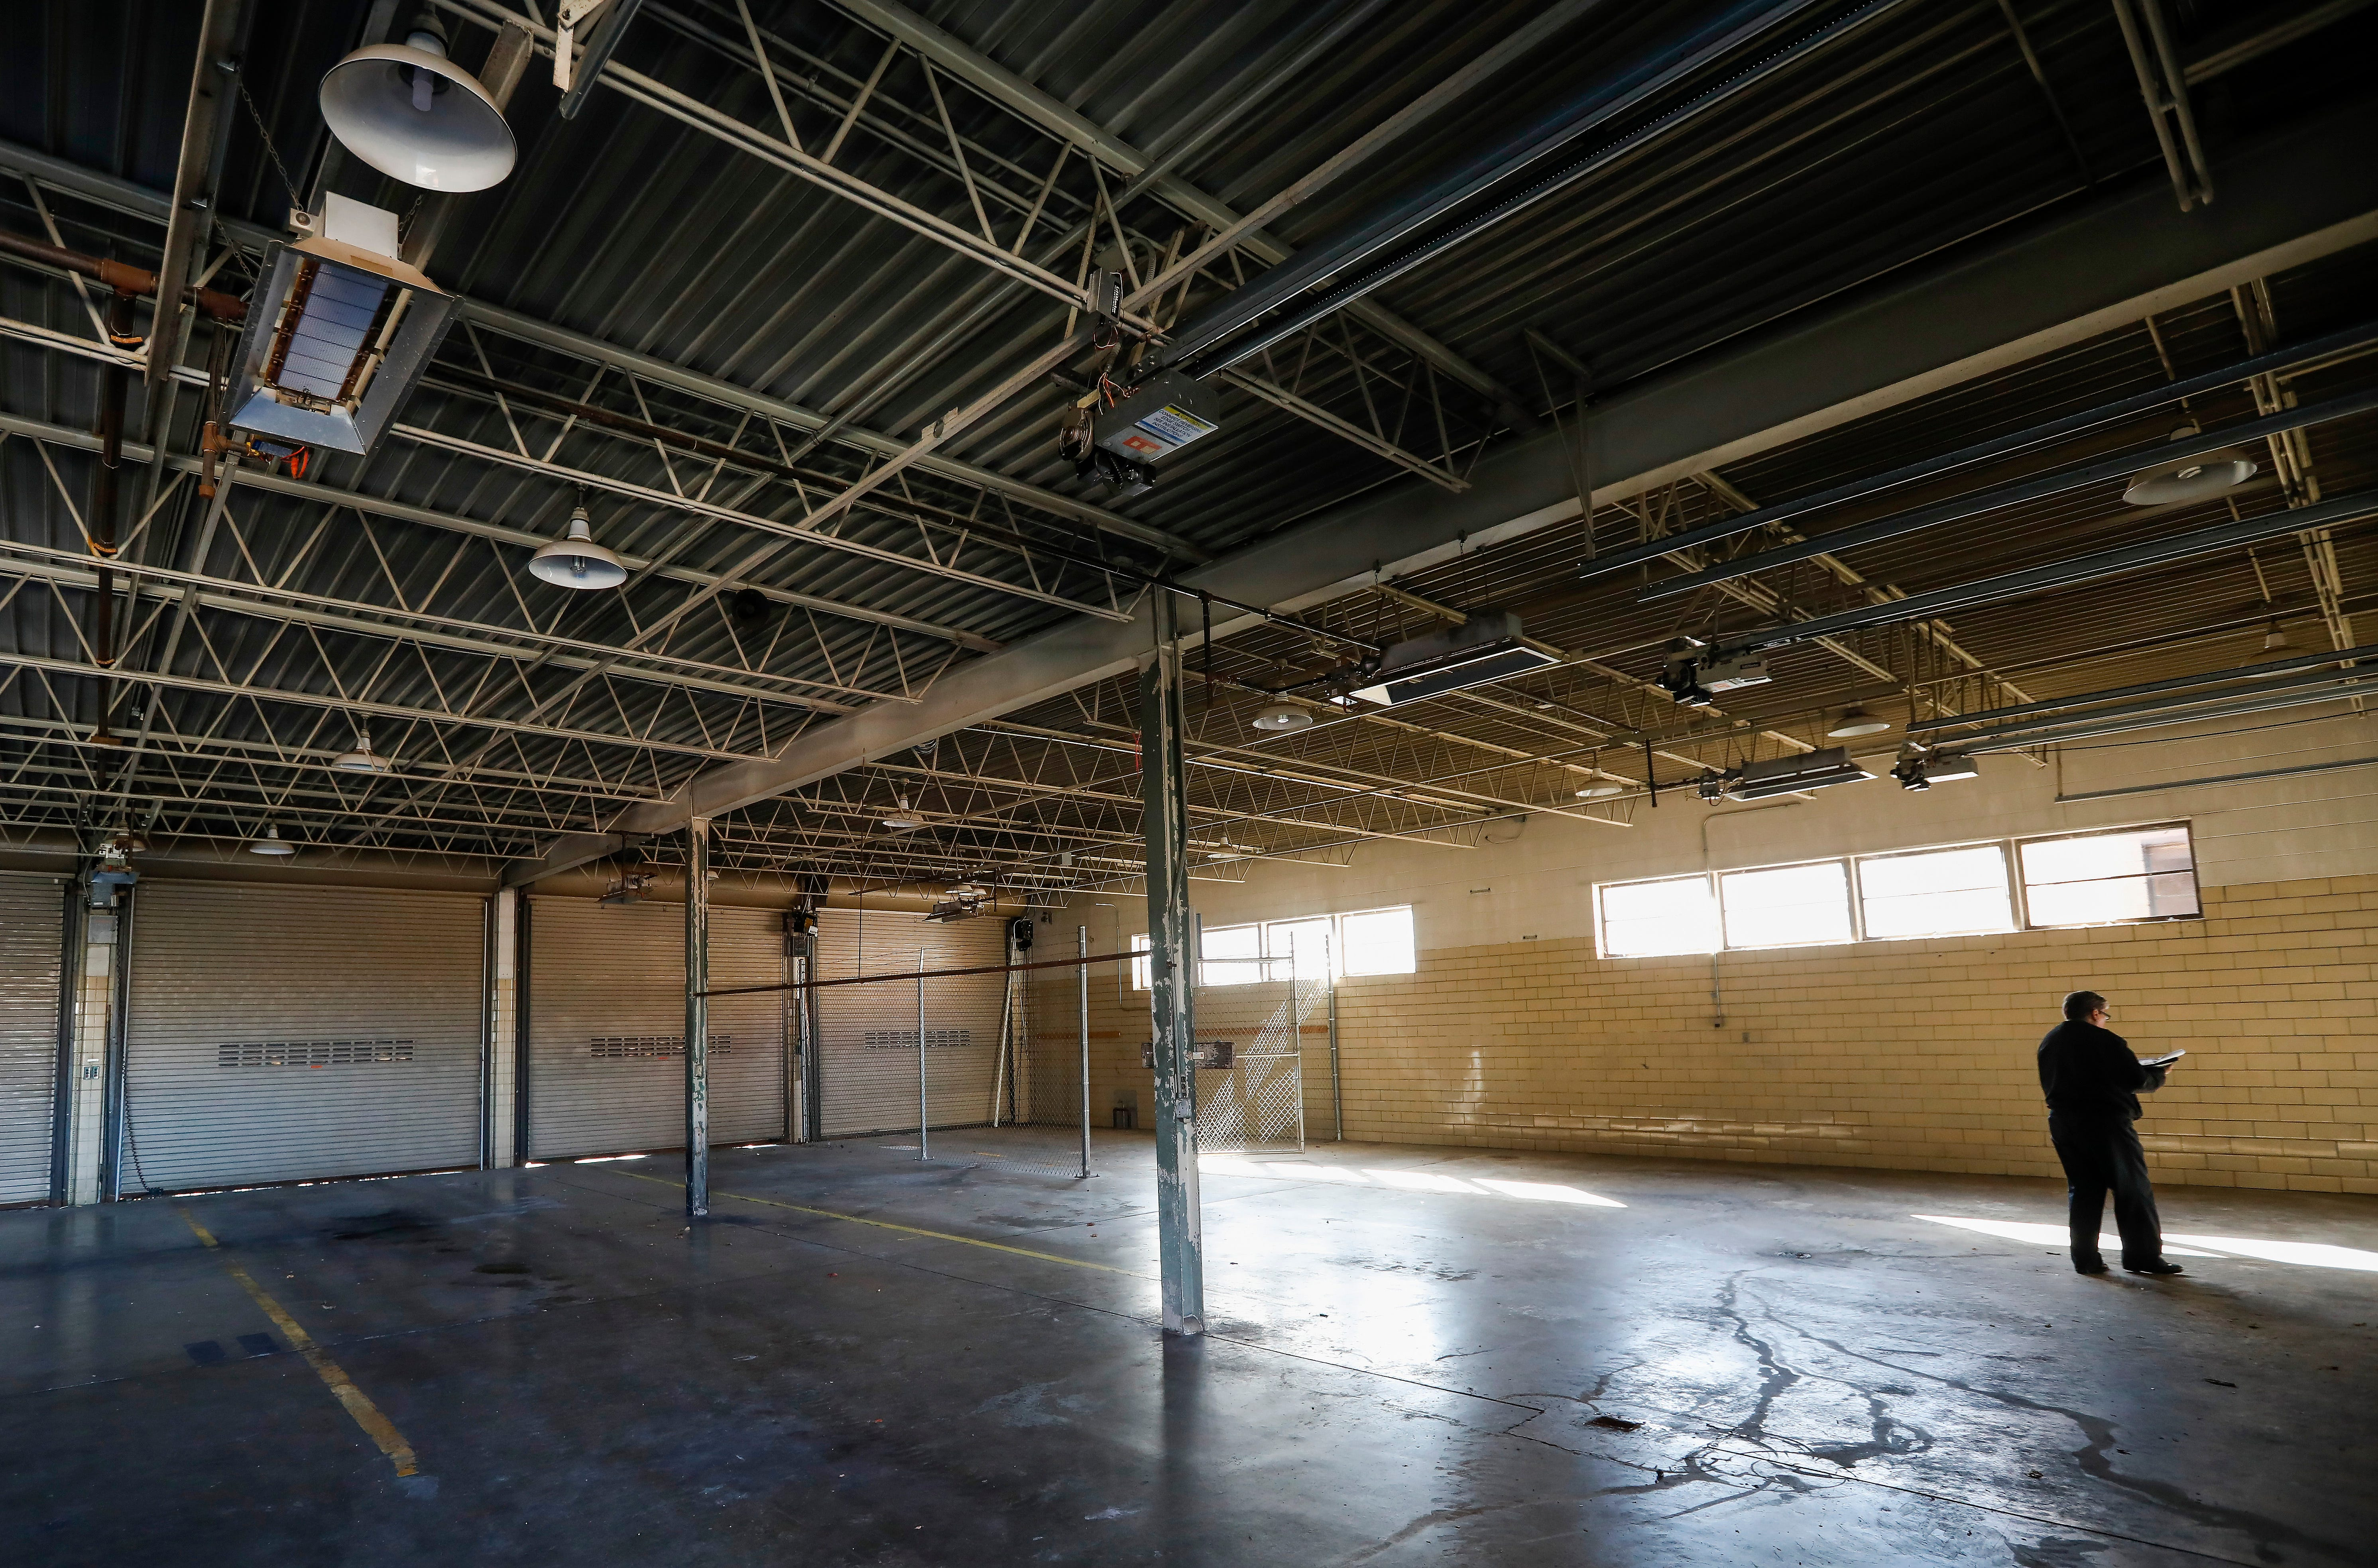 The garage of the old firehouse at the intersection of Kimbrough Avenue and Trafficway Street will be converted into the brewery and taproom at Hold Fast Brewing. The new brewery is expected to open in the summer of 2019.